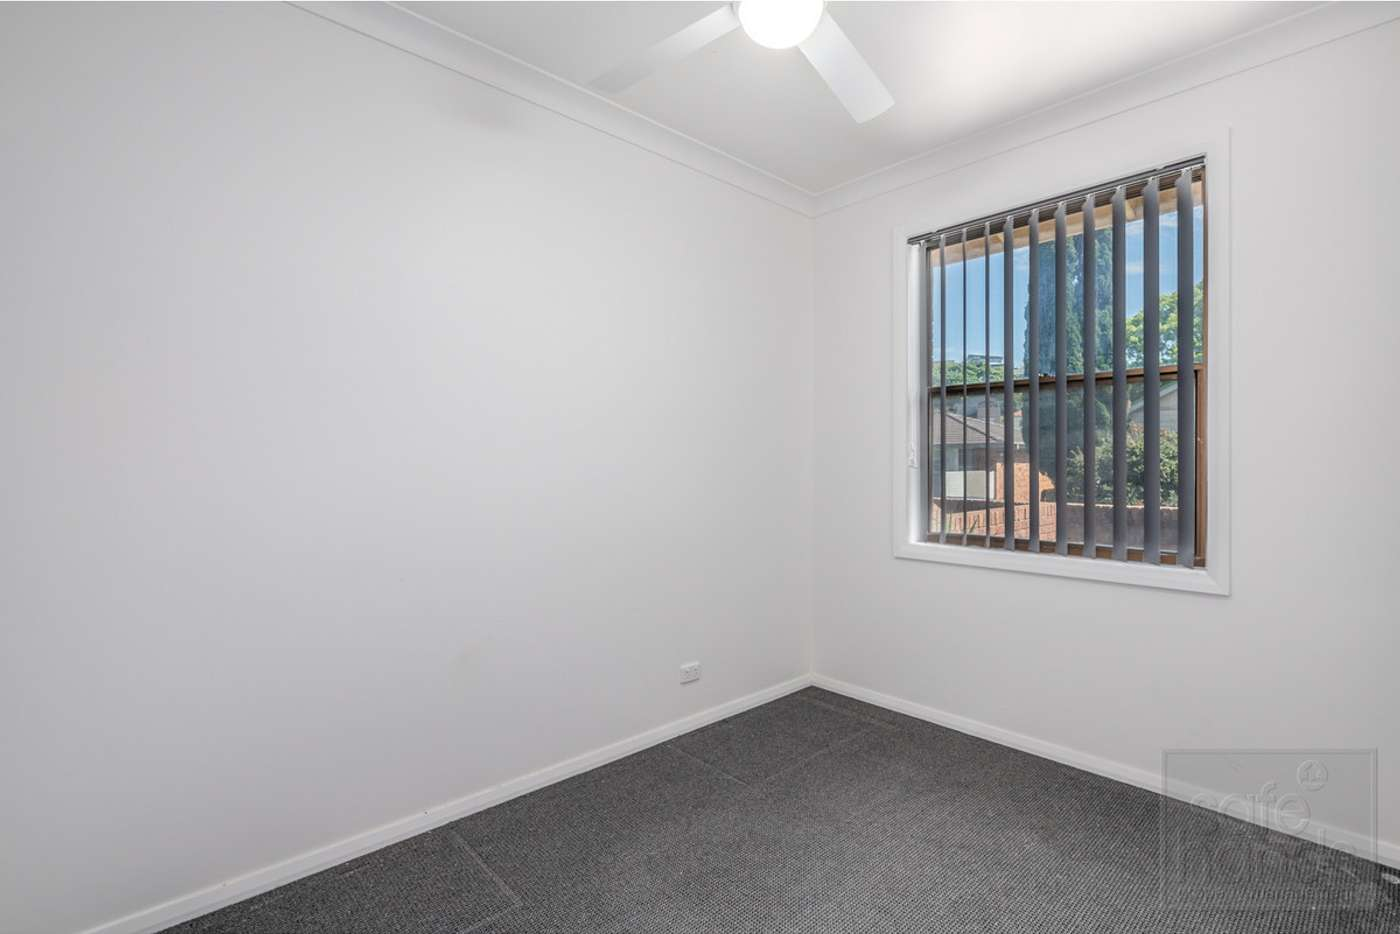 Sixth view of Homely villa listing, 3 Little Edward Street, Merewether NSW 2291